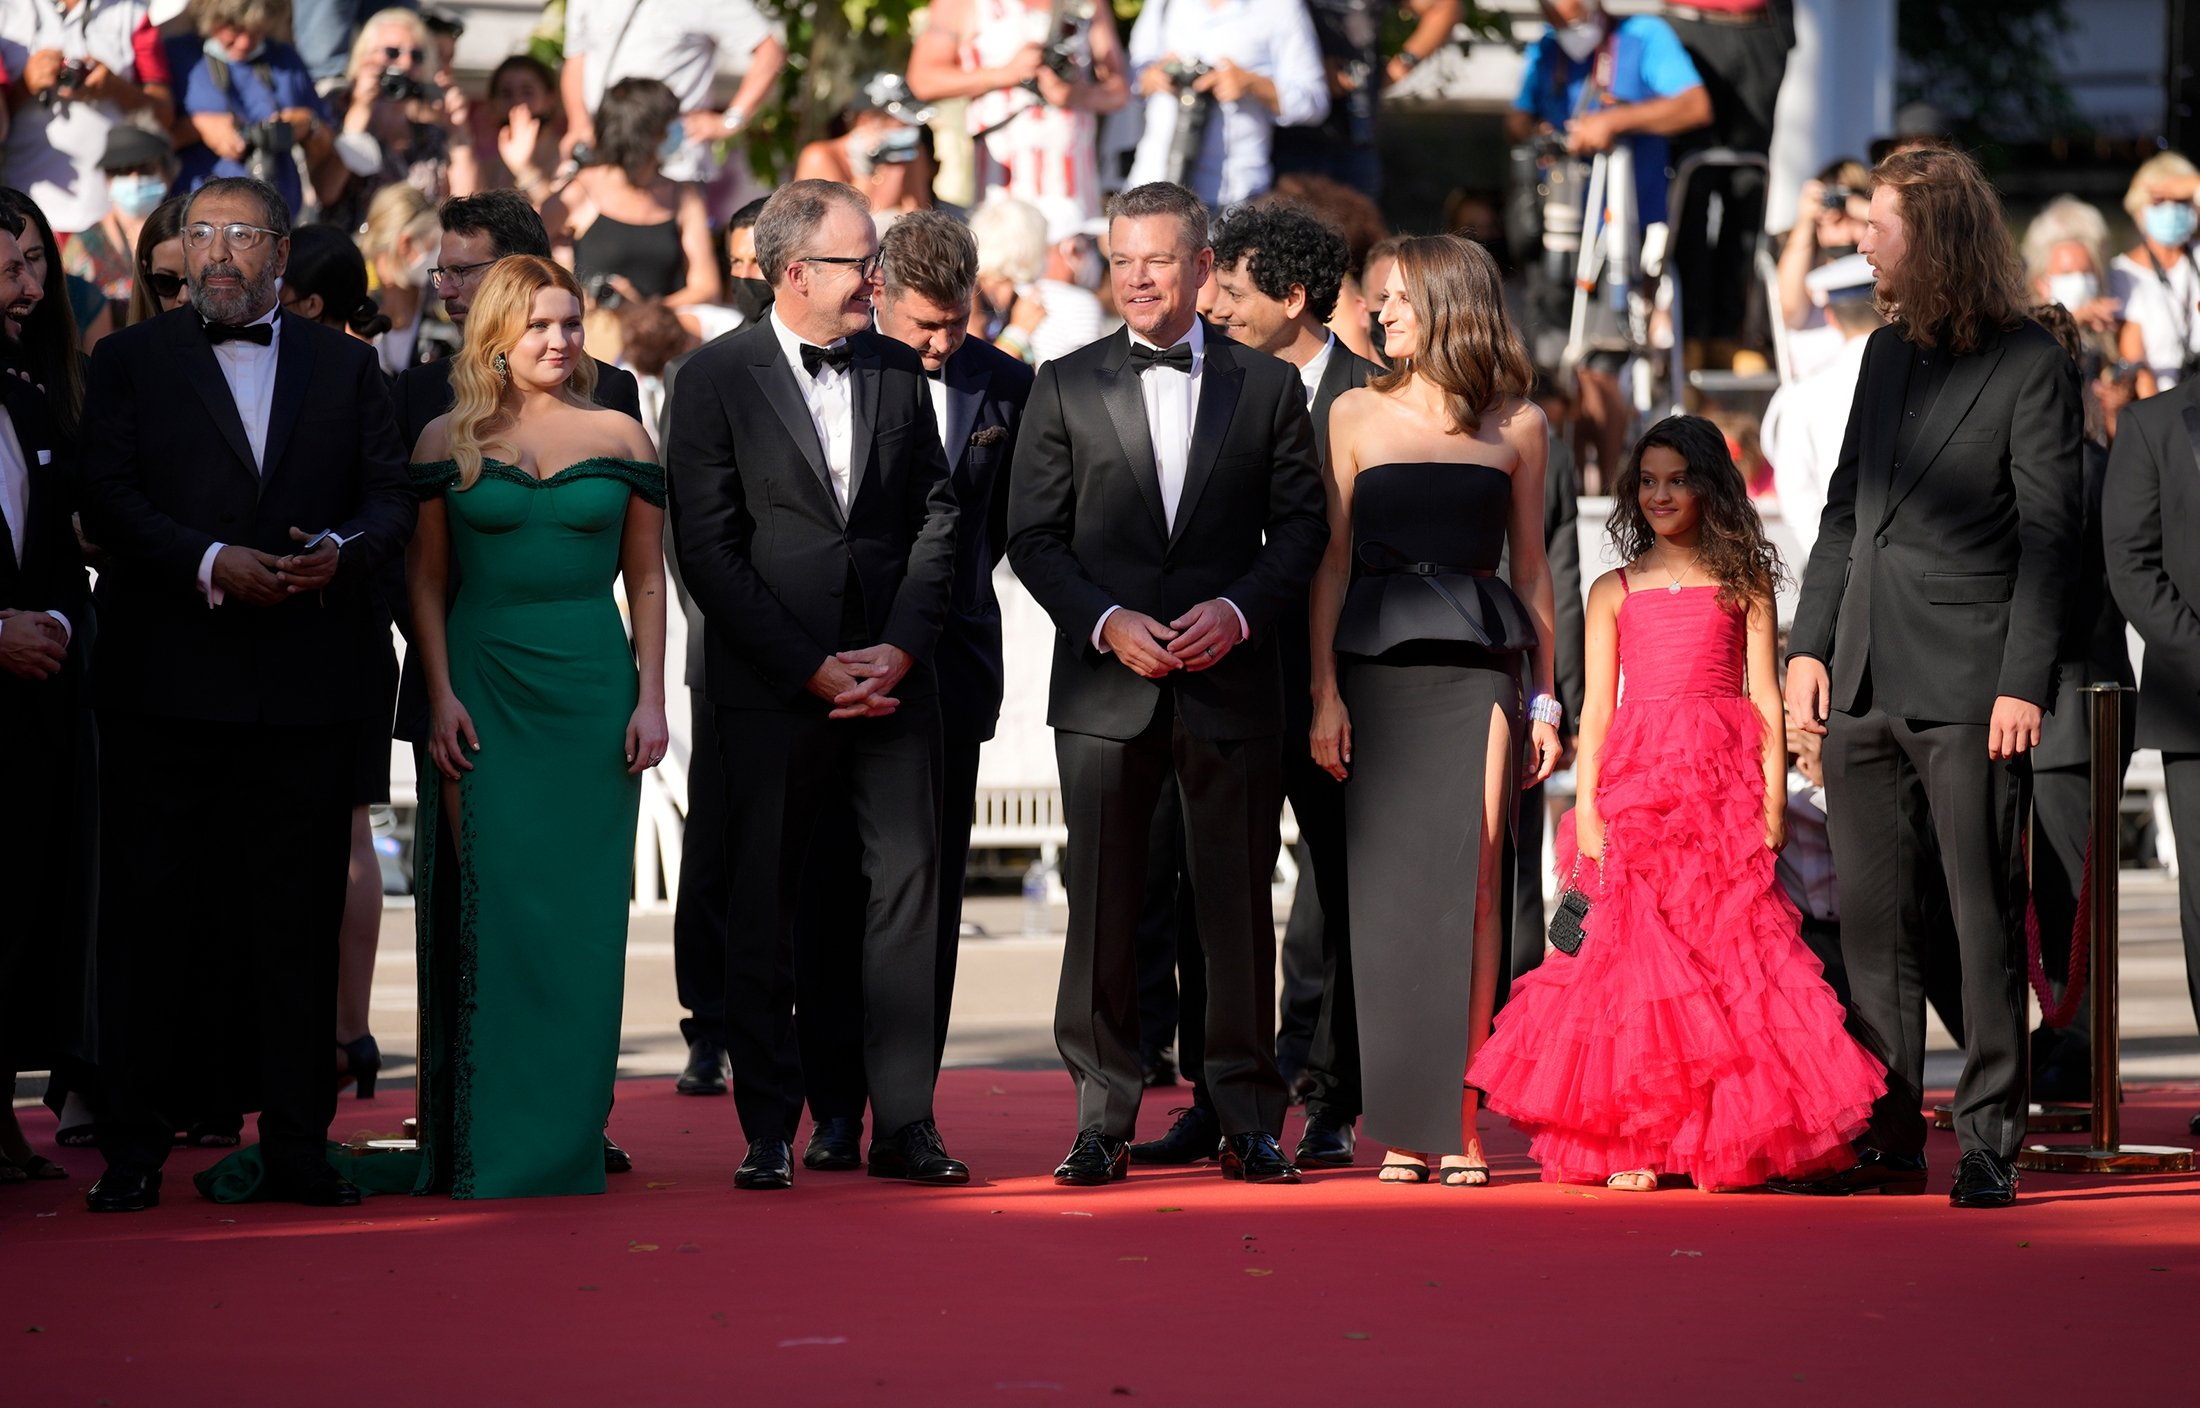 From left, Moussa Maaskri, Abigail Breslin, director Tom McCarthy, Thomas Bidegain, Matt Damon, Noe Debre, Camille Cottin, Lilou Siauvaud, and Idir Azougli pose for photographers upon arrival at the premiere of the film 'Stillwater' at the 74th international film festival, Cannes, southern France, July 8, 2021. (AP Photo)